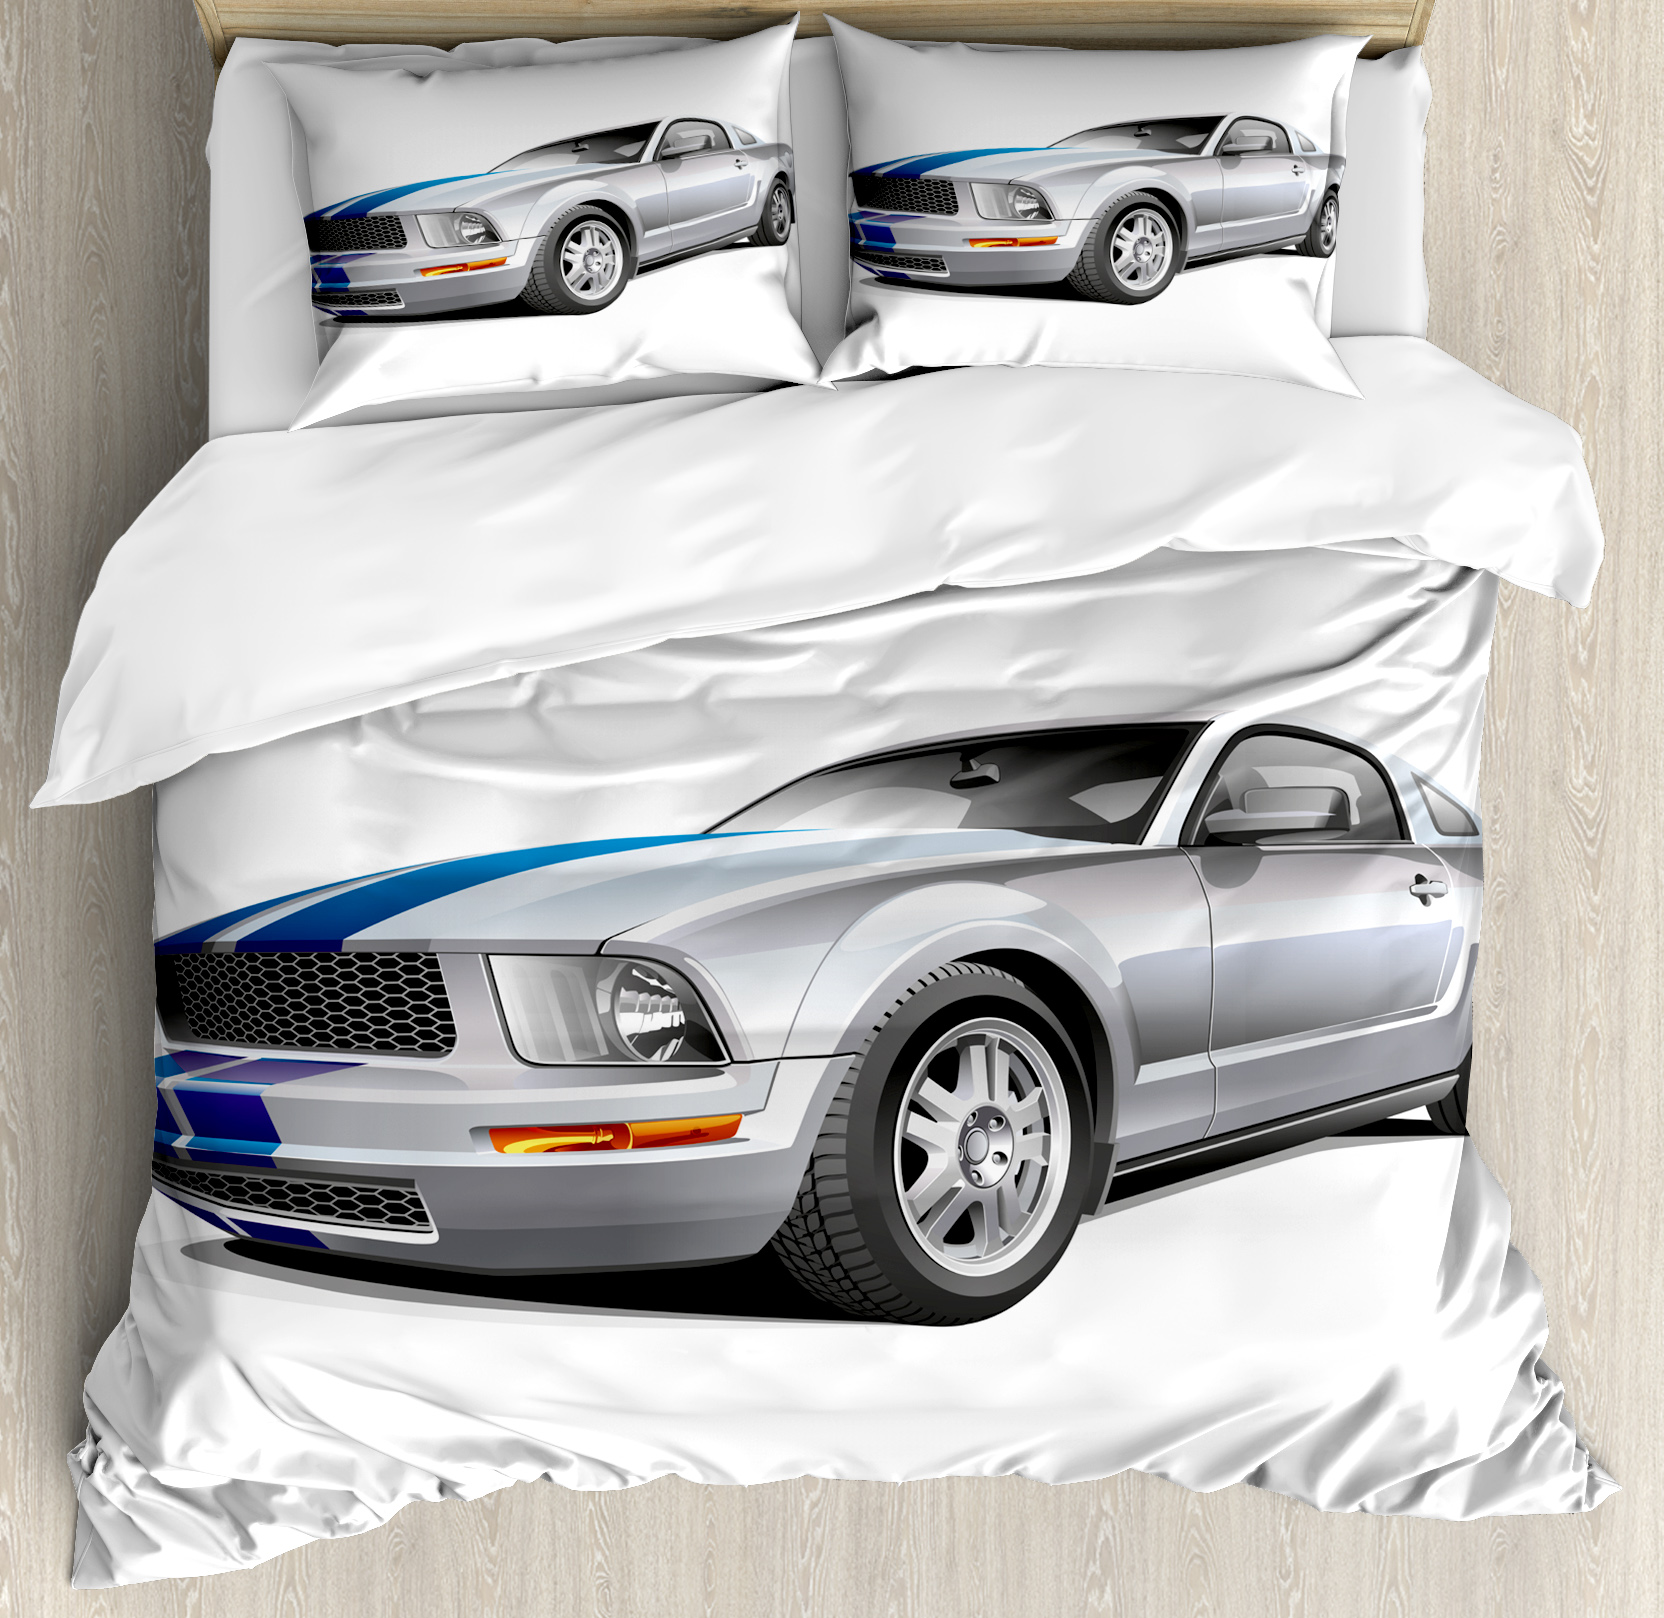 Teen Room Duvet Cover Set, Modern Cool Car Automobile Fancy Speed Fast Vehicle Illustration Print, Decorative Bedding Set with Pillow Shams, Silver Grey Blue, by Ambesonne